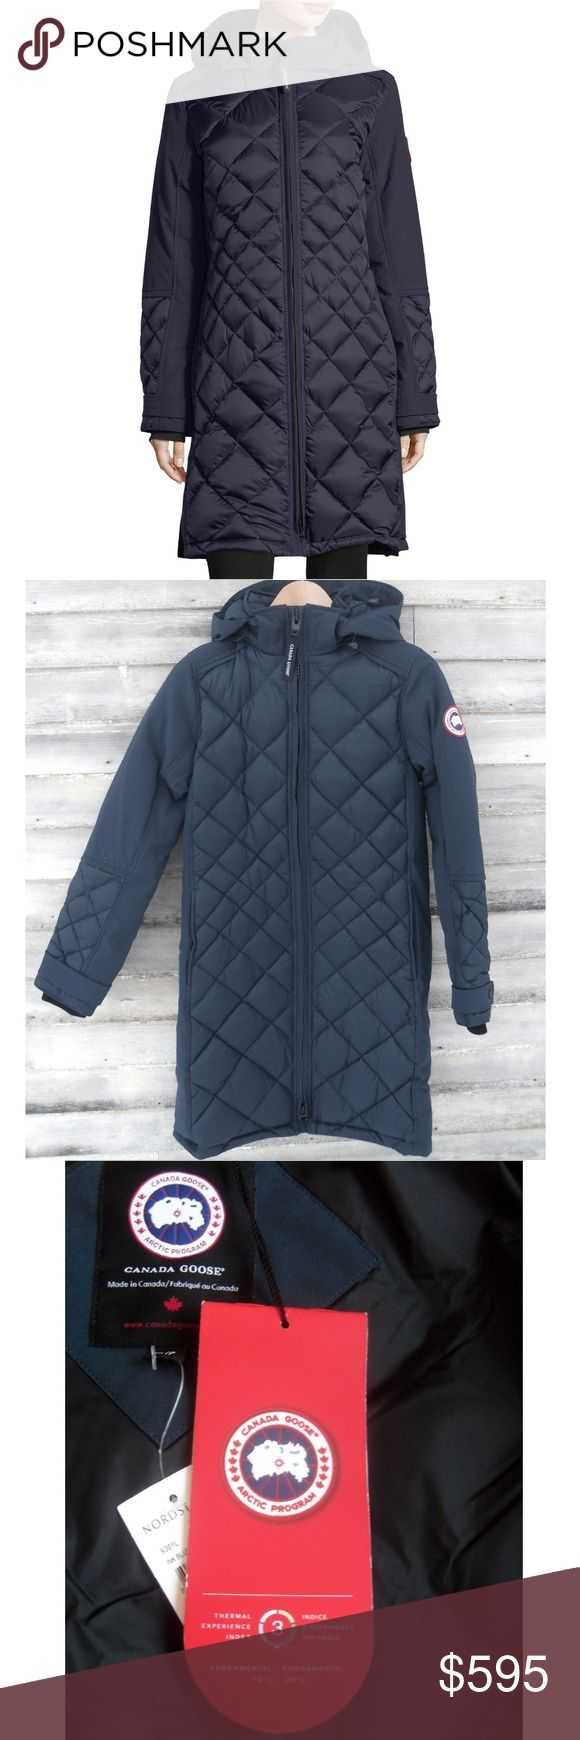 """Canada Goose Women's Cabot Quilted Down Parka NEW A stylish long down coat for cold weather wear. Made in Canada. Dark """"Ink Blue"""". New w/tags. Never worn. Size S (4-6). Retail price $1095.  Quilted down with smooth sides and upper arms. 675 fill power. Lined with 80% goose down and 20% feather fill. Removable drawstring hood. Zip front. Logo patch on left sleeve. Thigh / knee length. Double back vent with snaps. Side zipper pockets. Inner zip pocket and open mesh pocket.  100% authentic with…"""